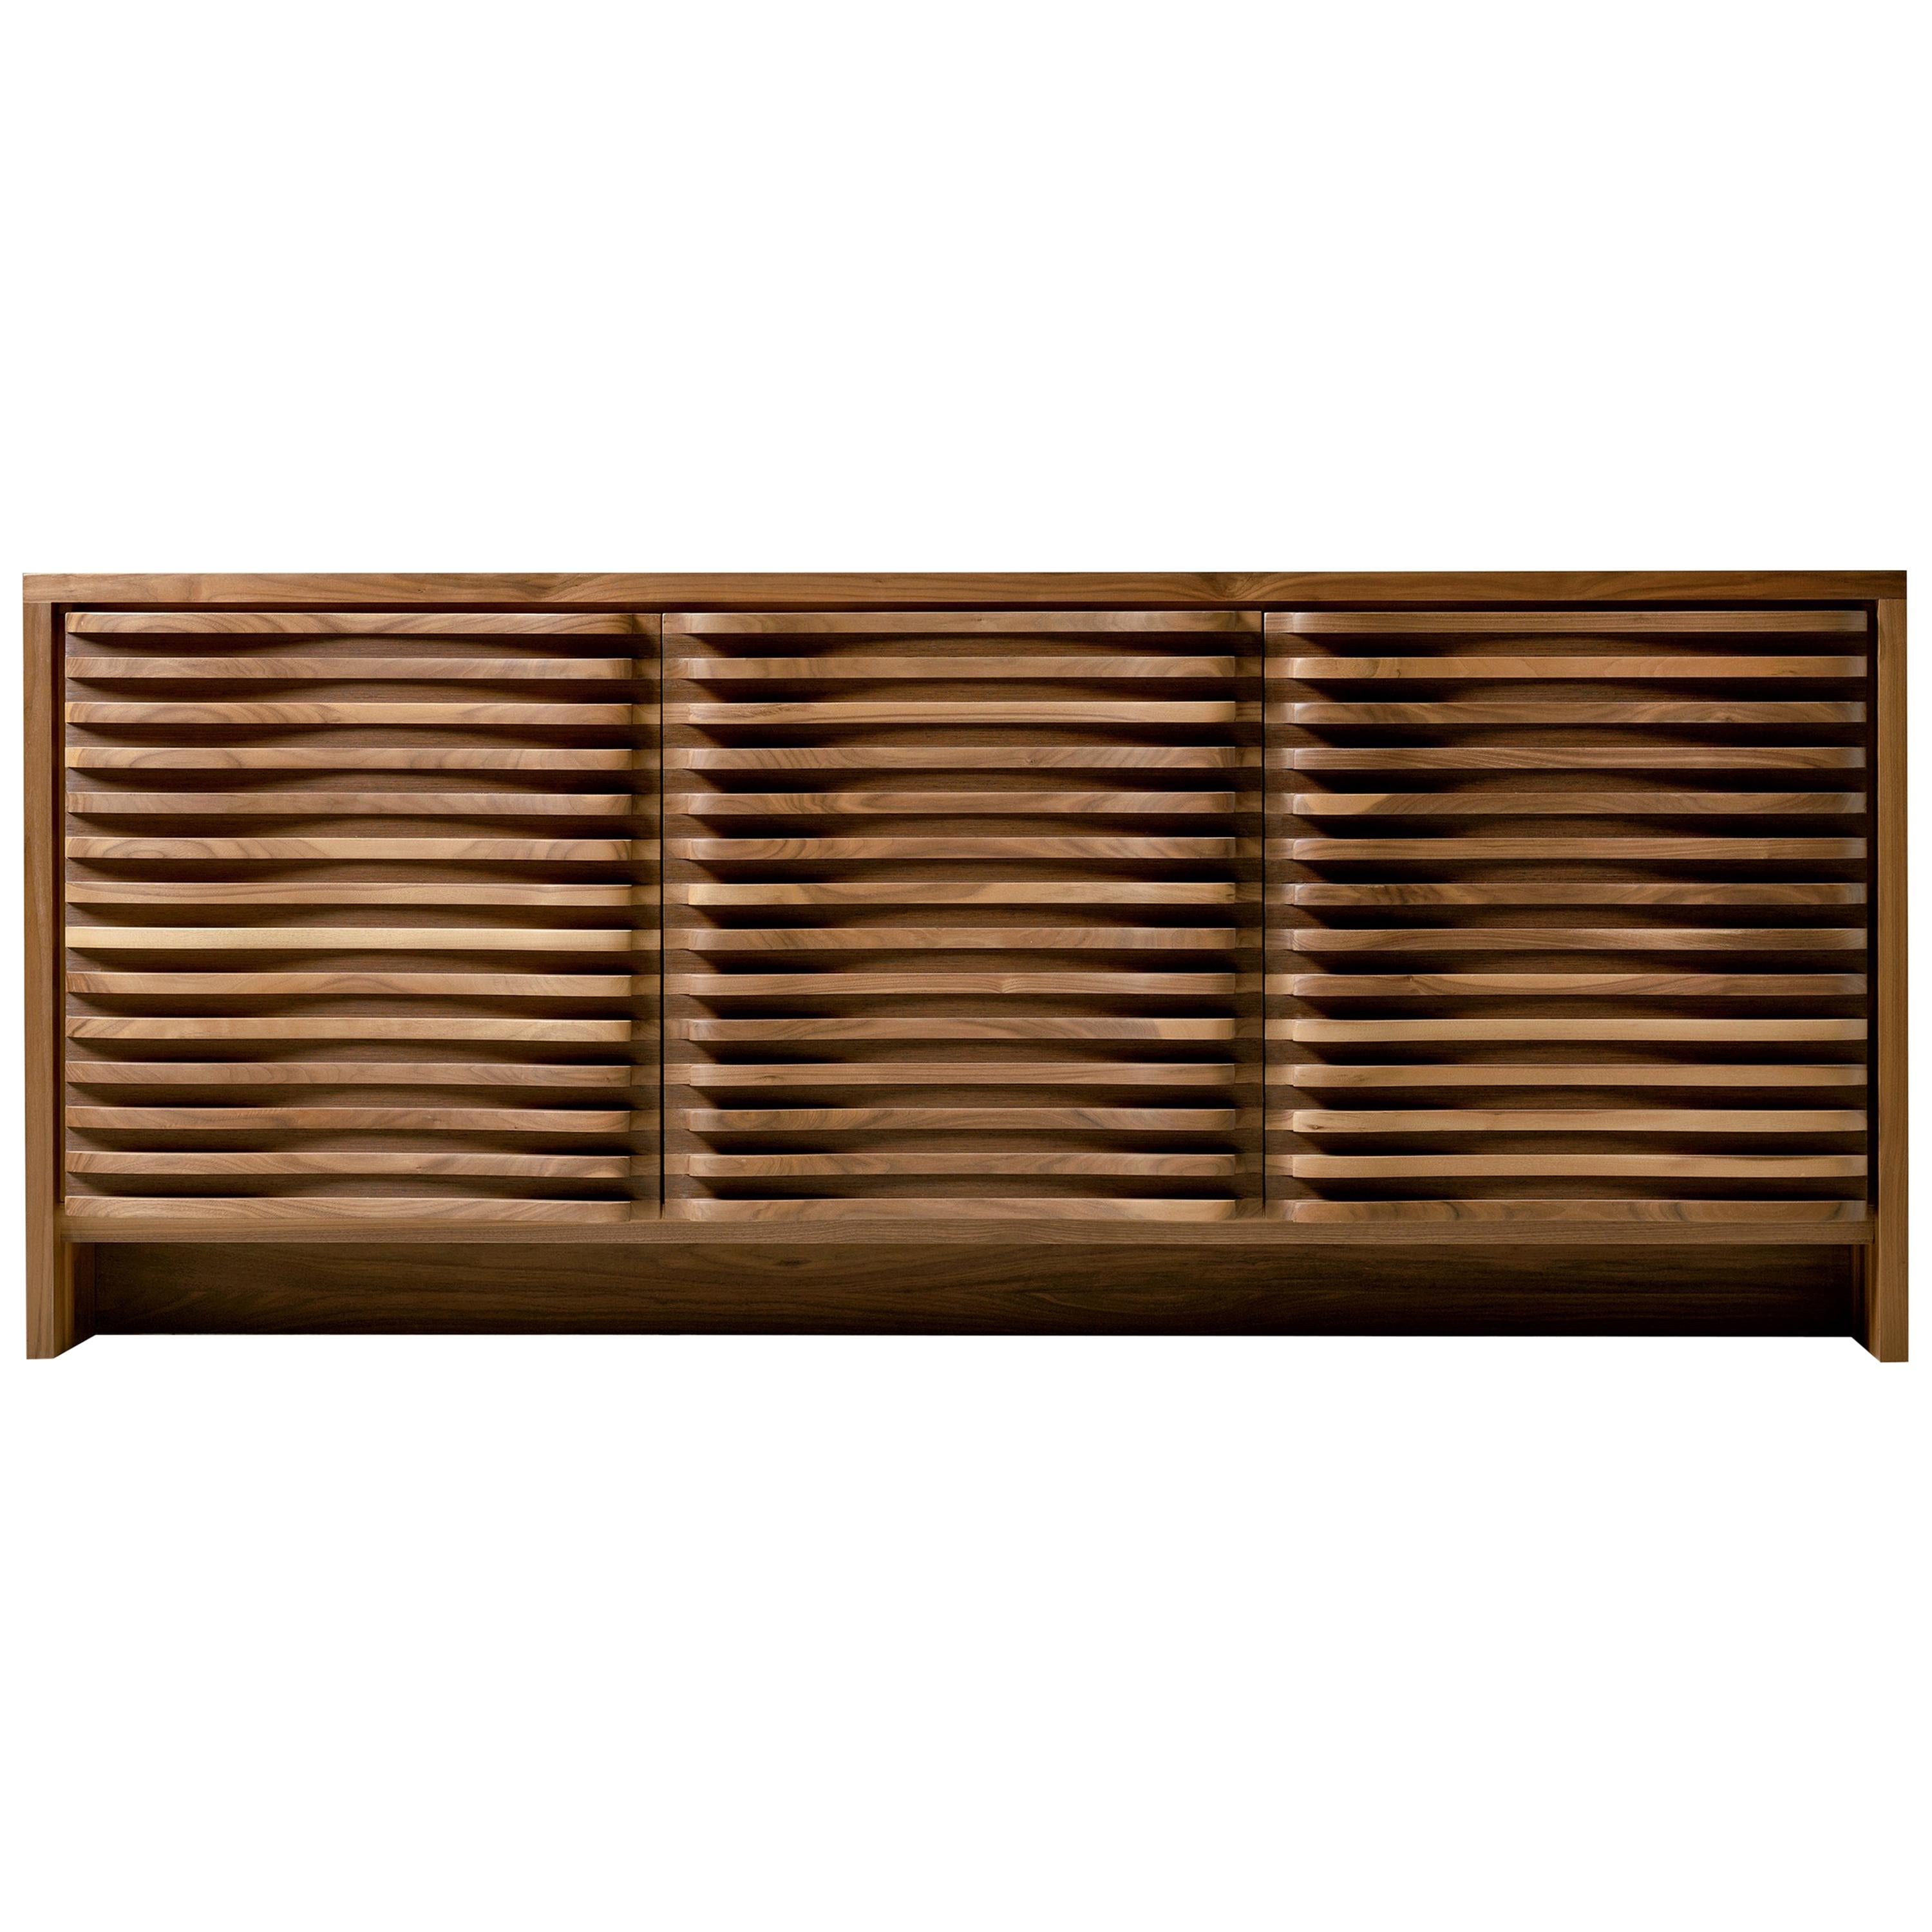 Sinuo sideboard A-121 by Dale Italia